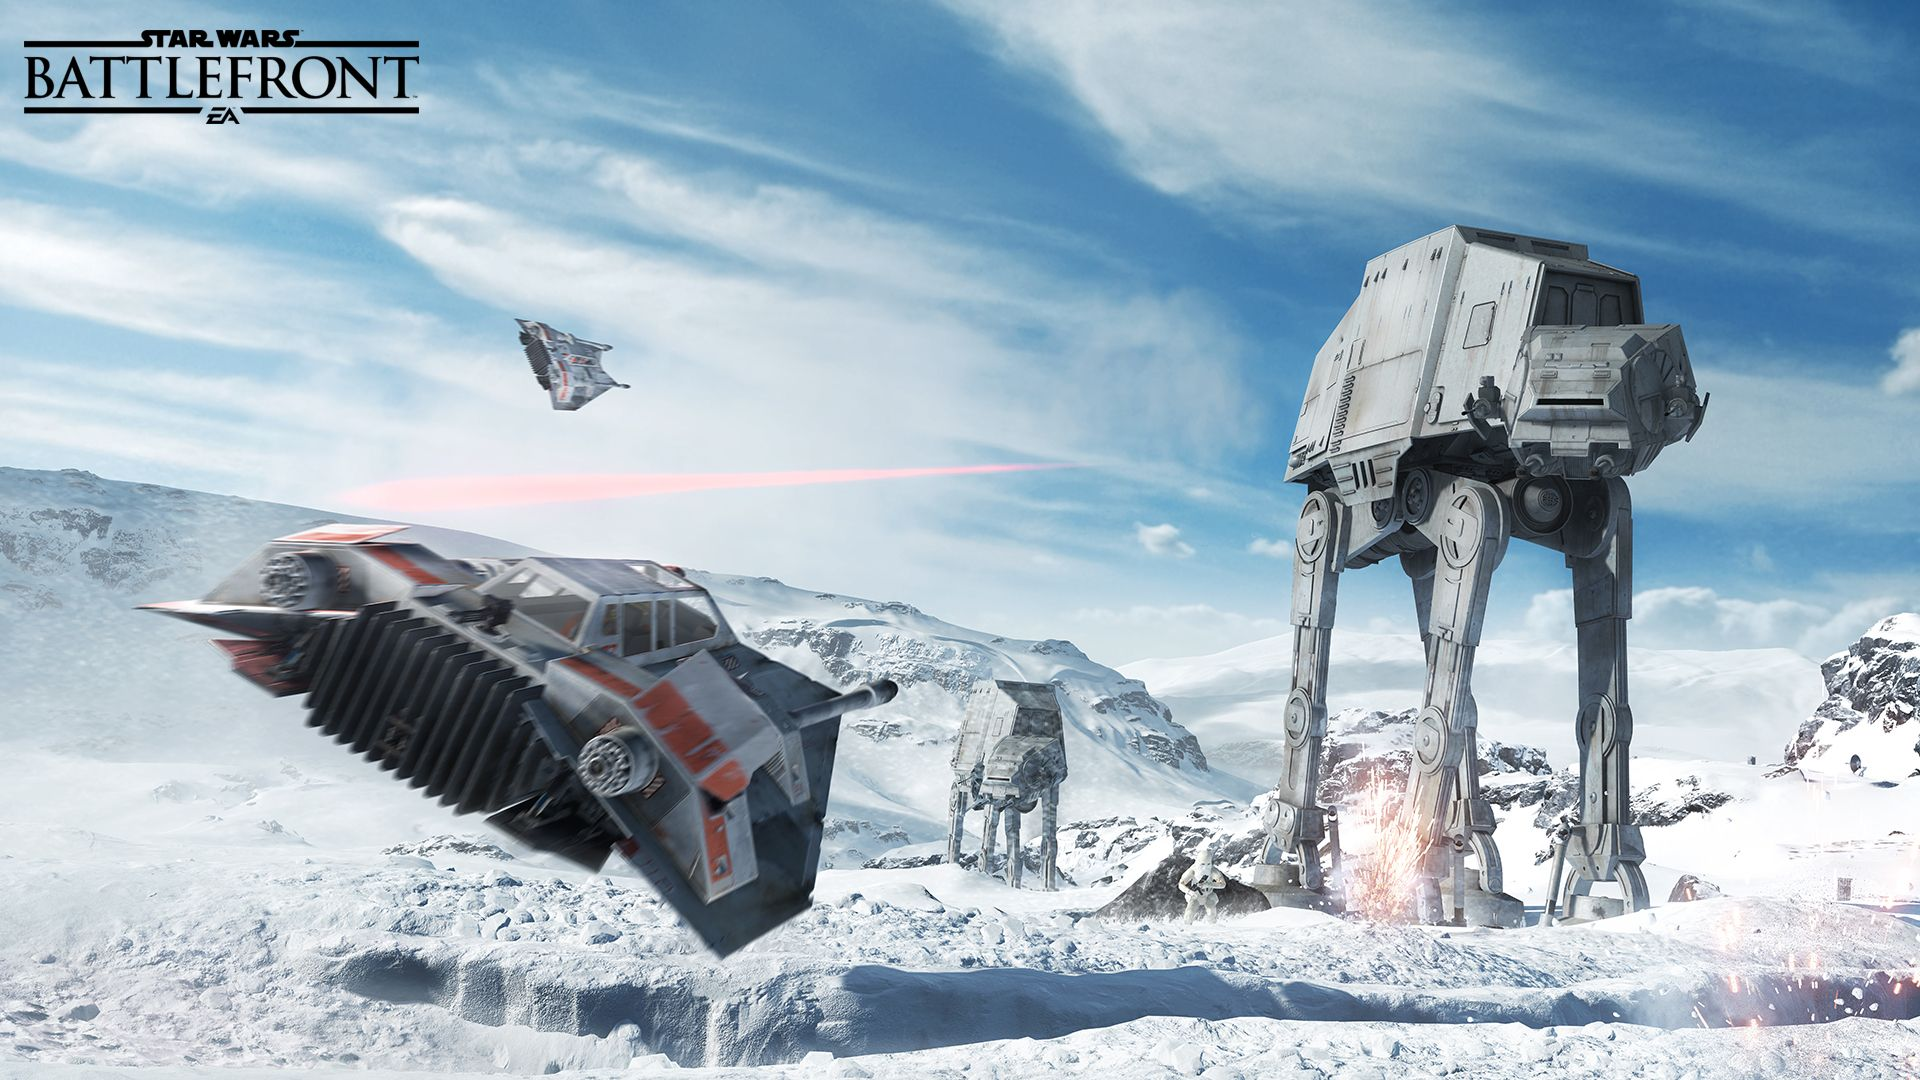 Star Wars Battlefront Release Date Announced And Trailer